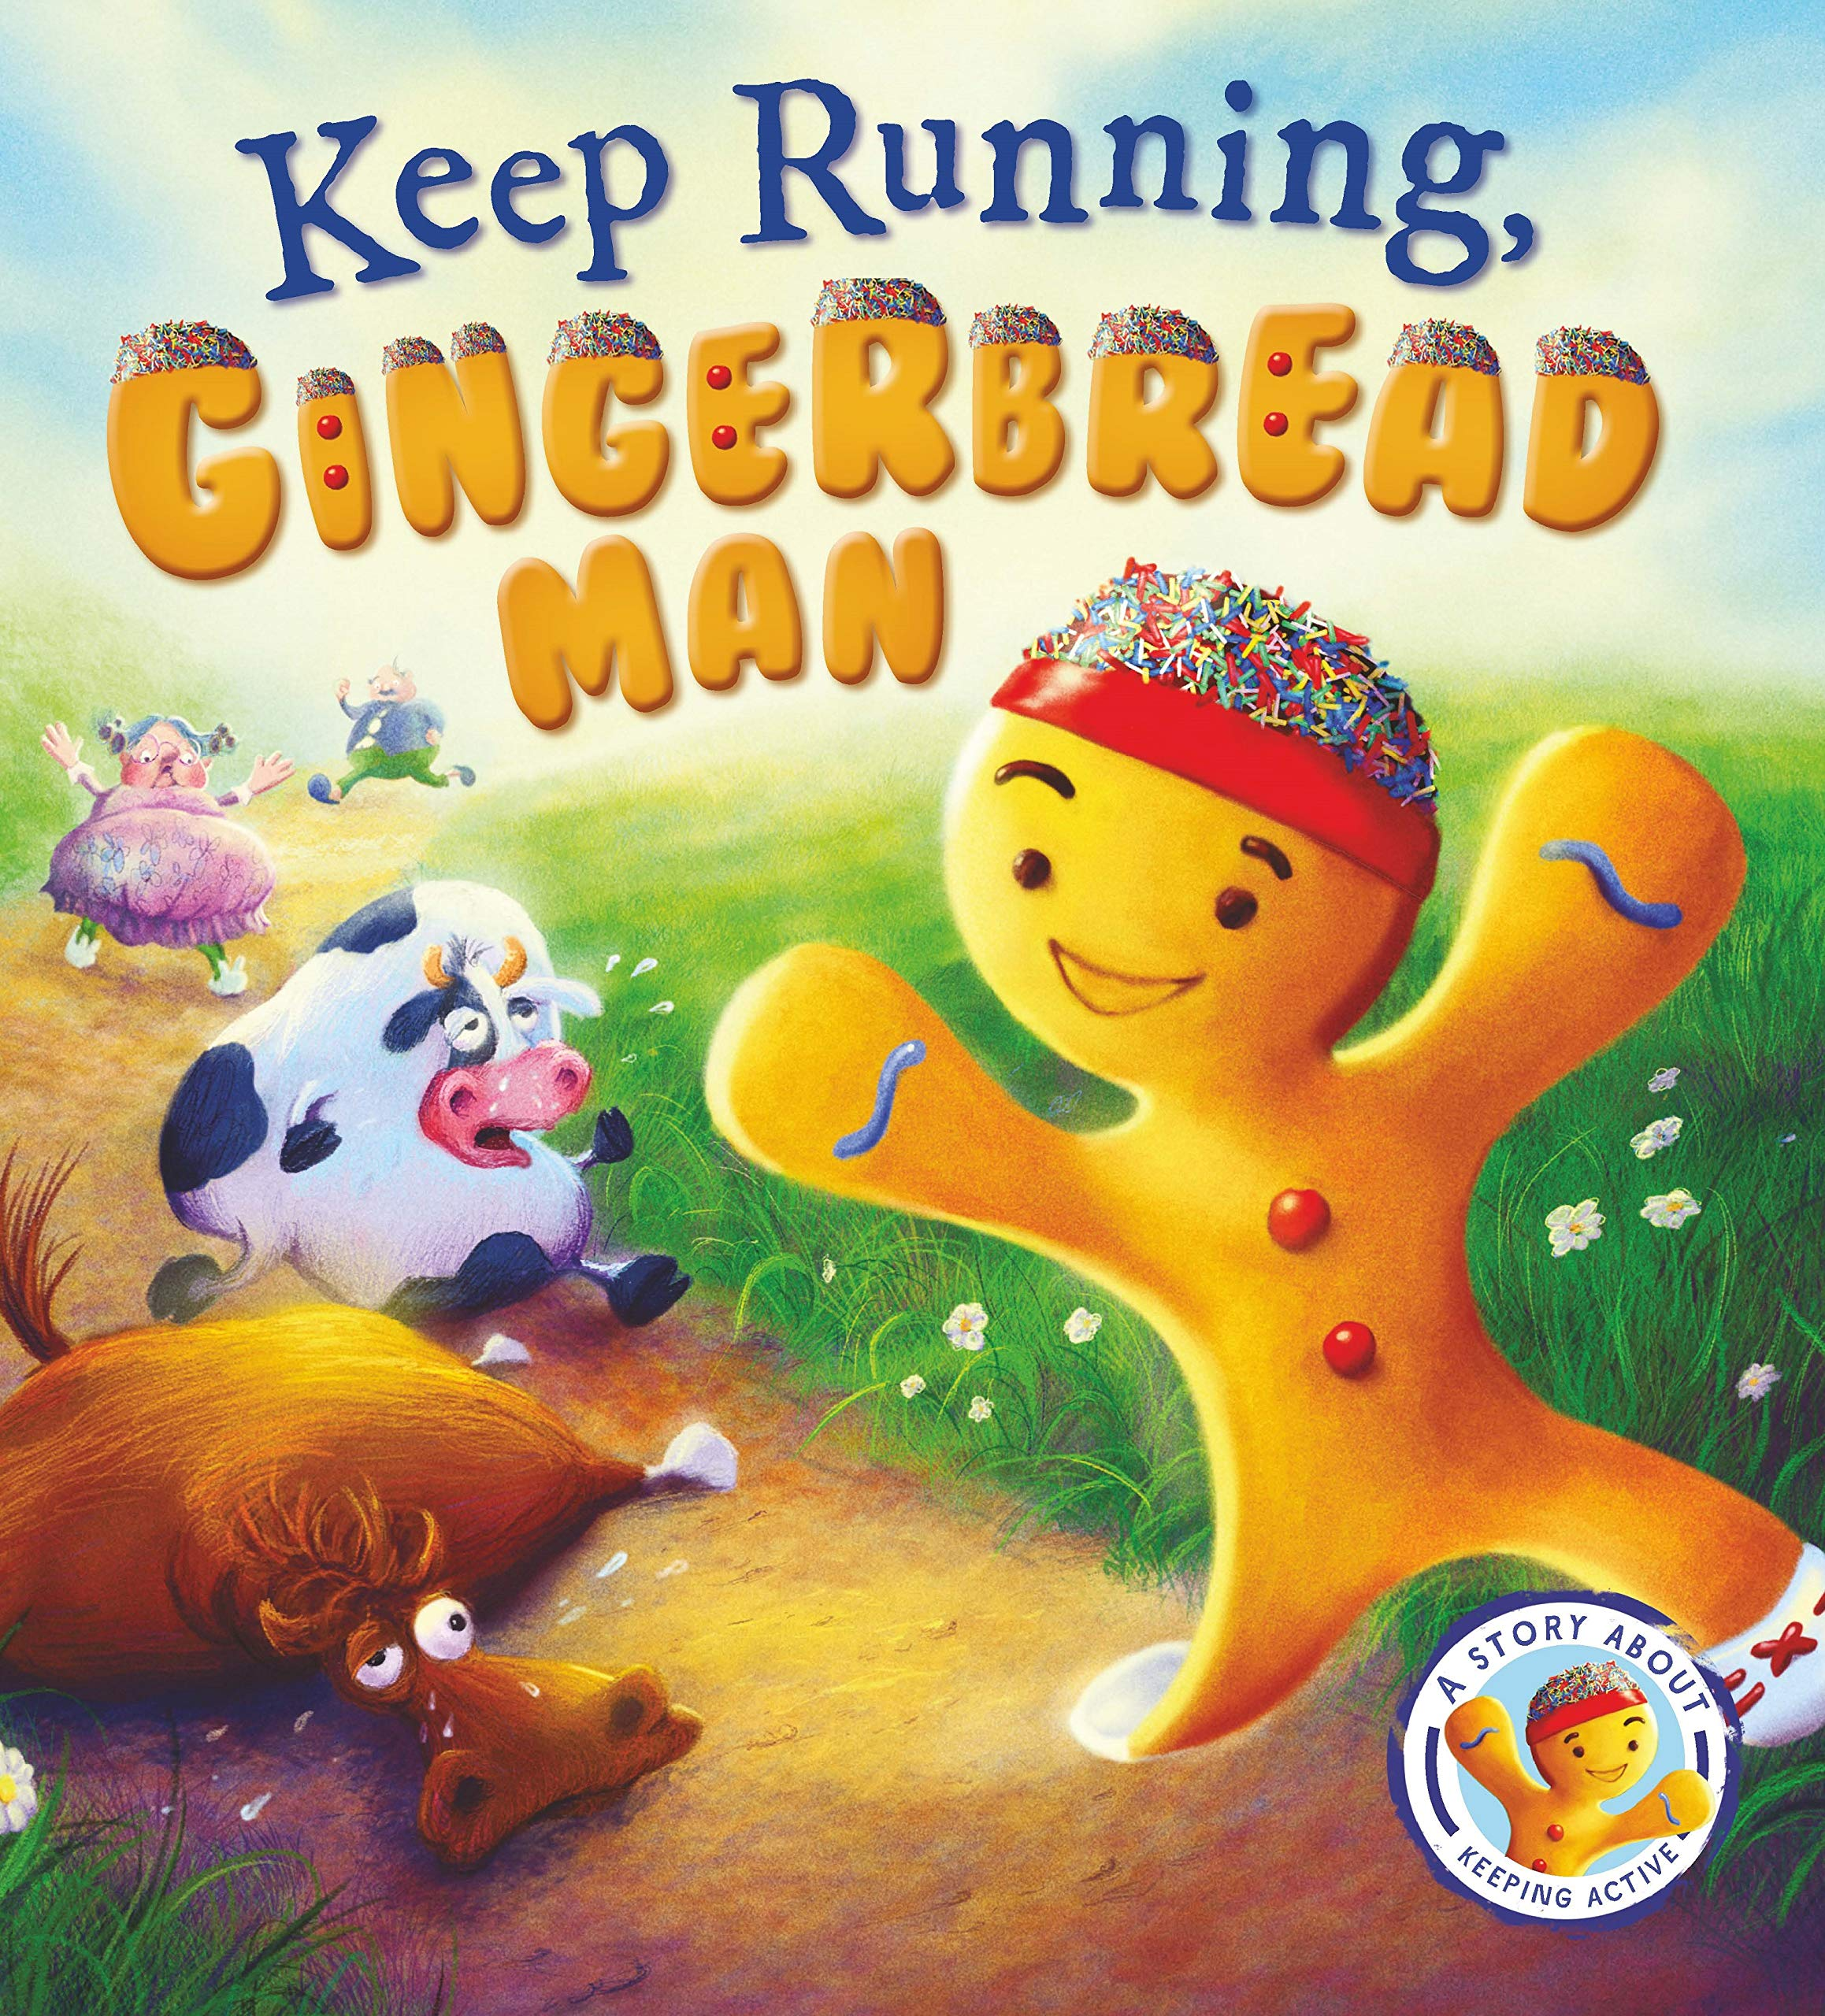 Fairytales Gone Wrong: Keep Running. Gingerbread Man: A Story About Keeping  Active: Amazon.co.uk: Steve Smallman, Neil Price: Books